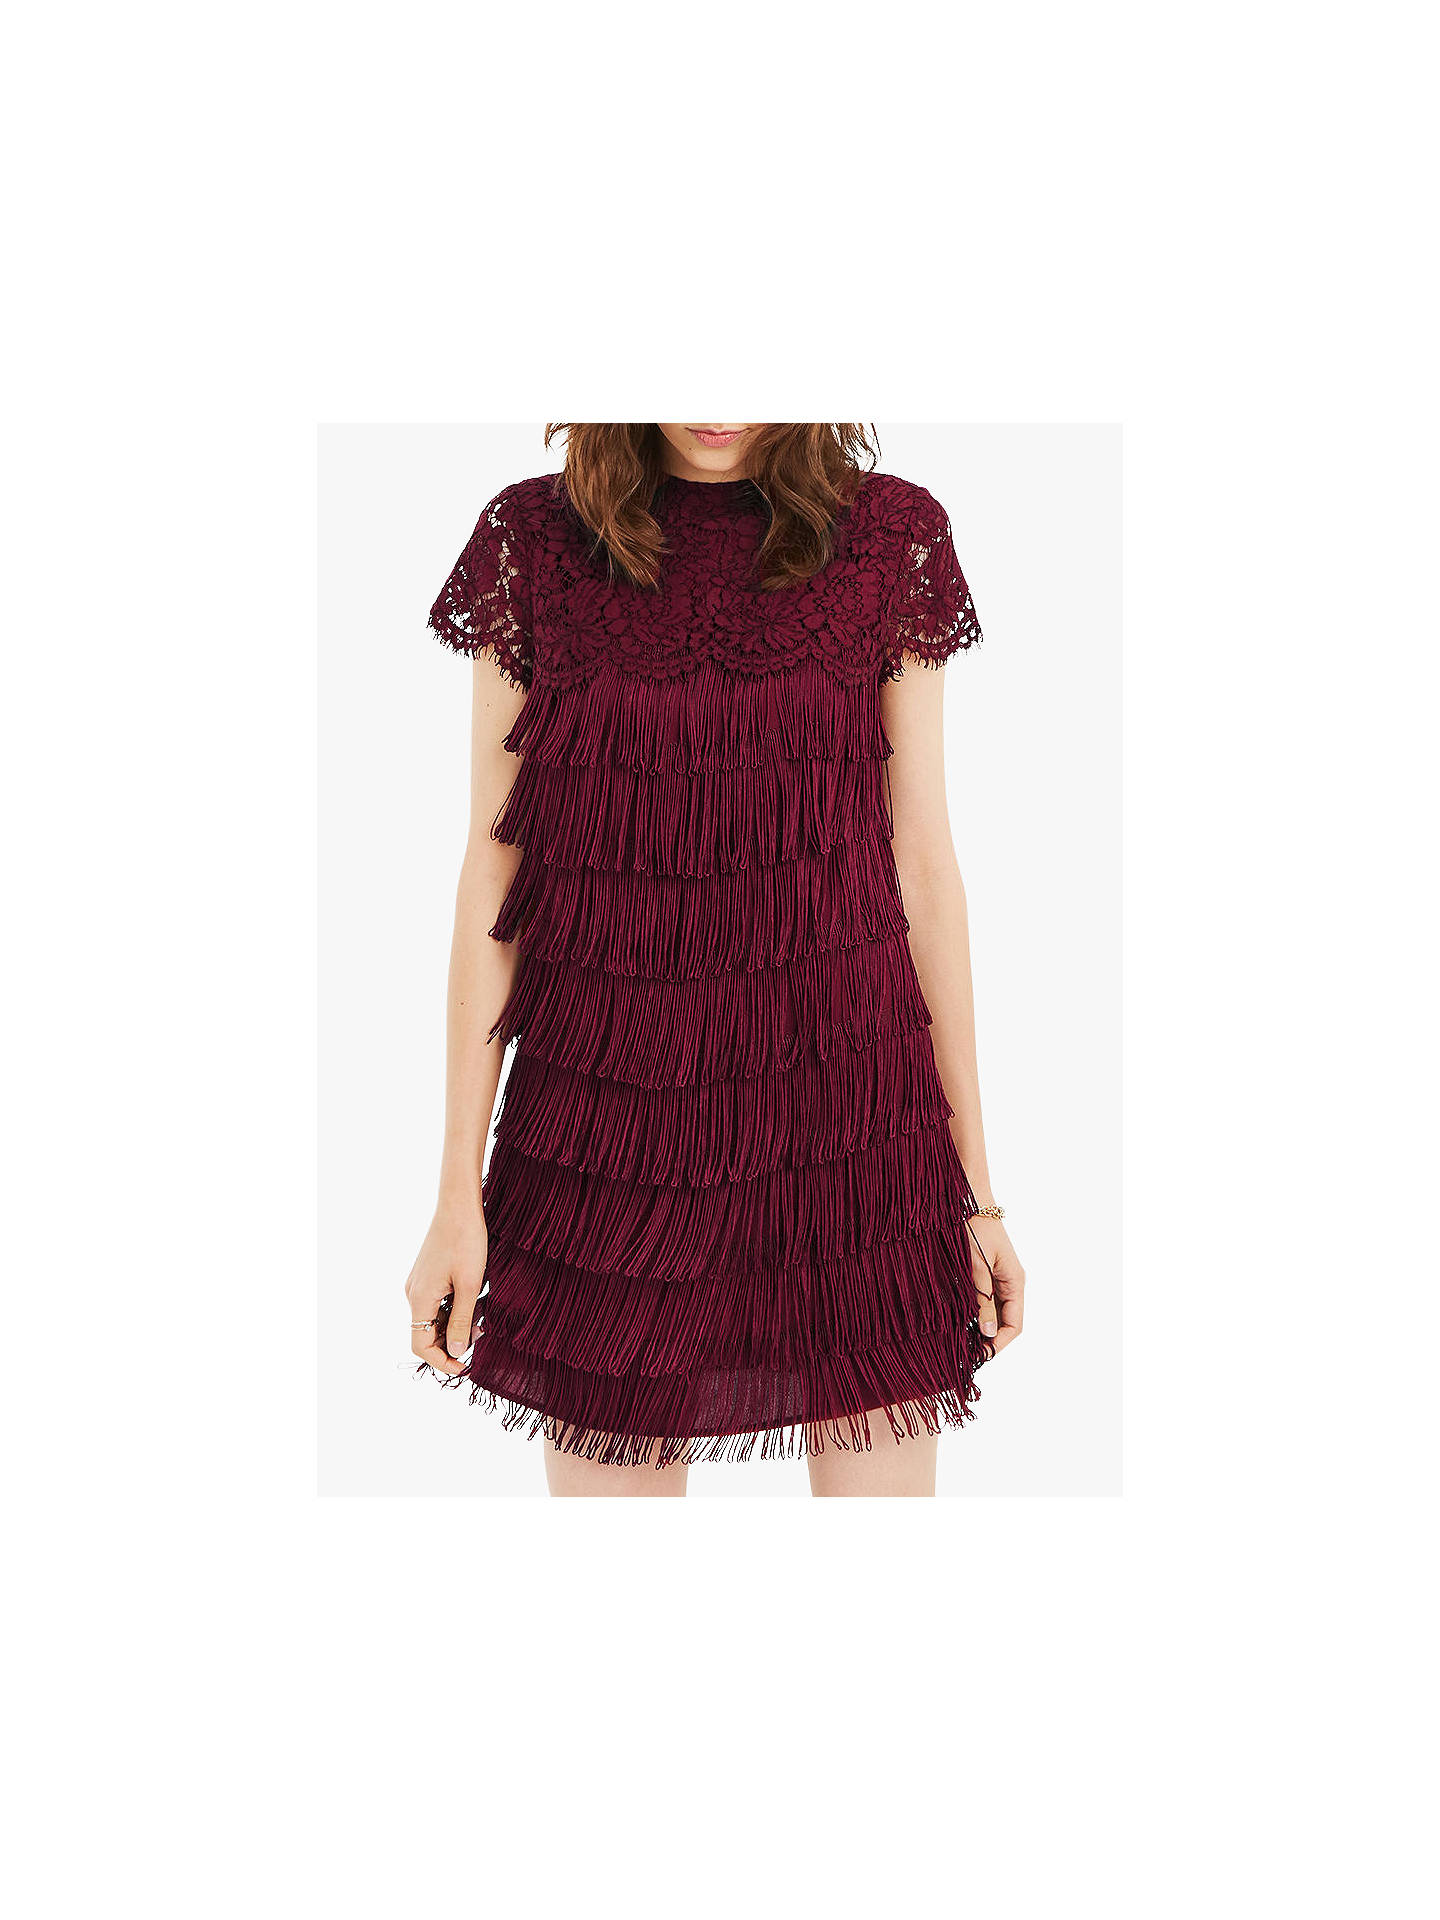 dd2c6e836750 Buy Oasis Lace Fringe Dress, Burgundy, 8 Online at johnlewis.com ...